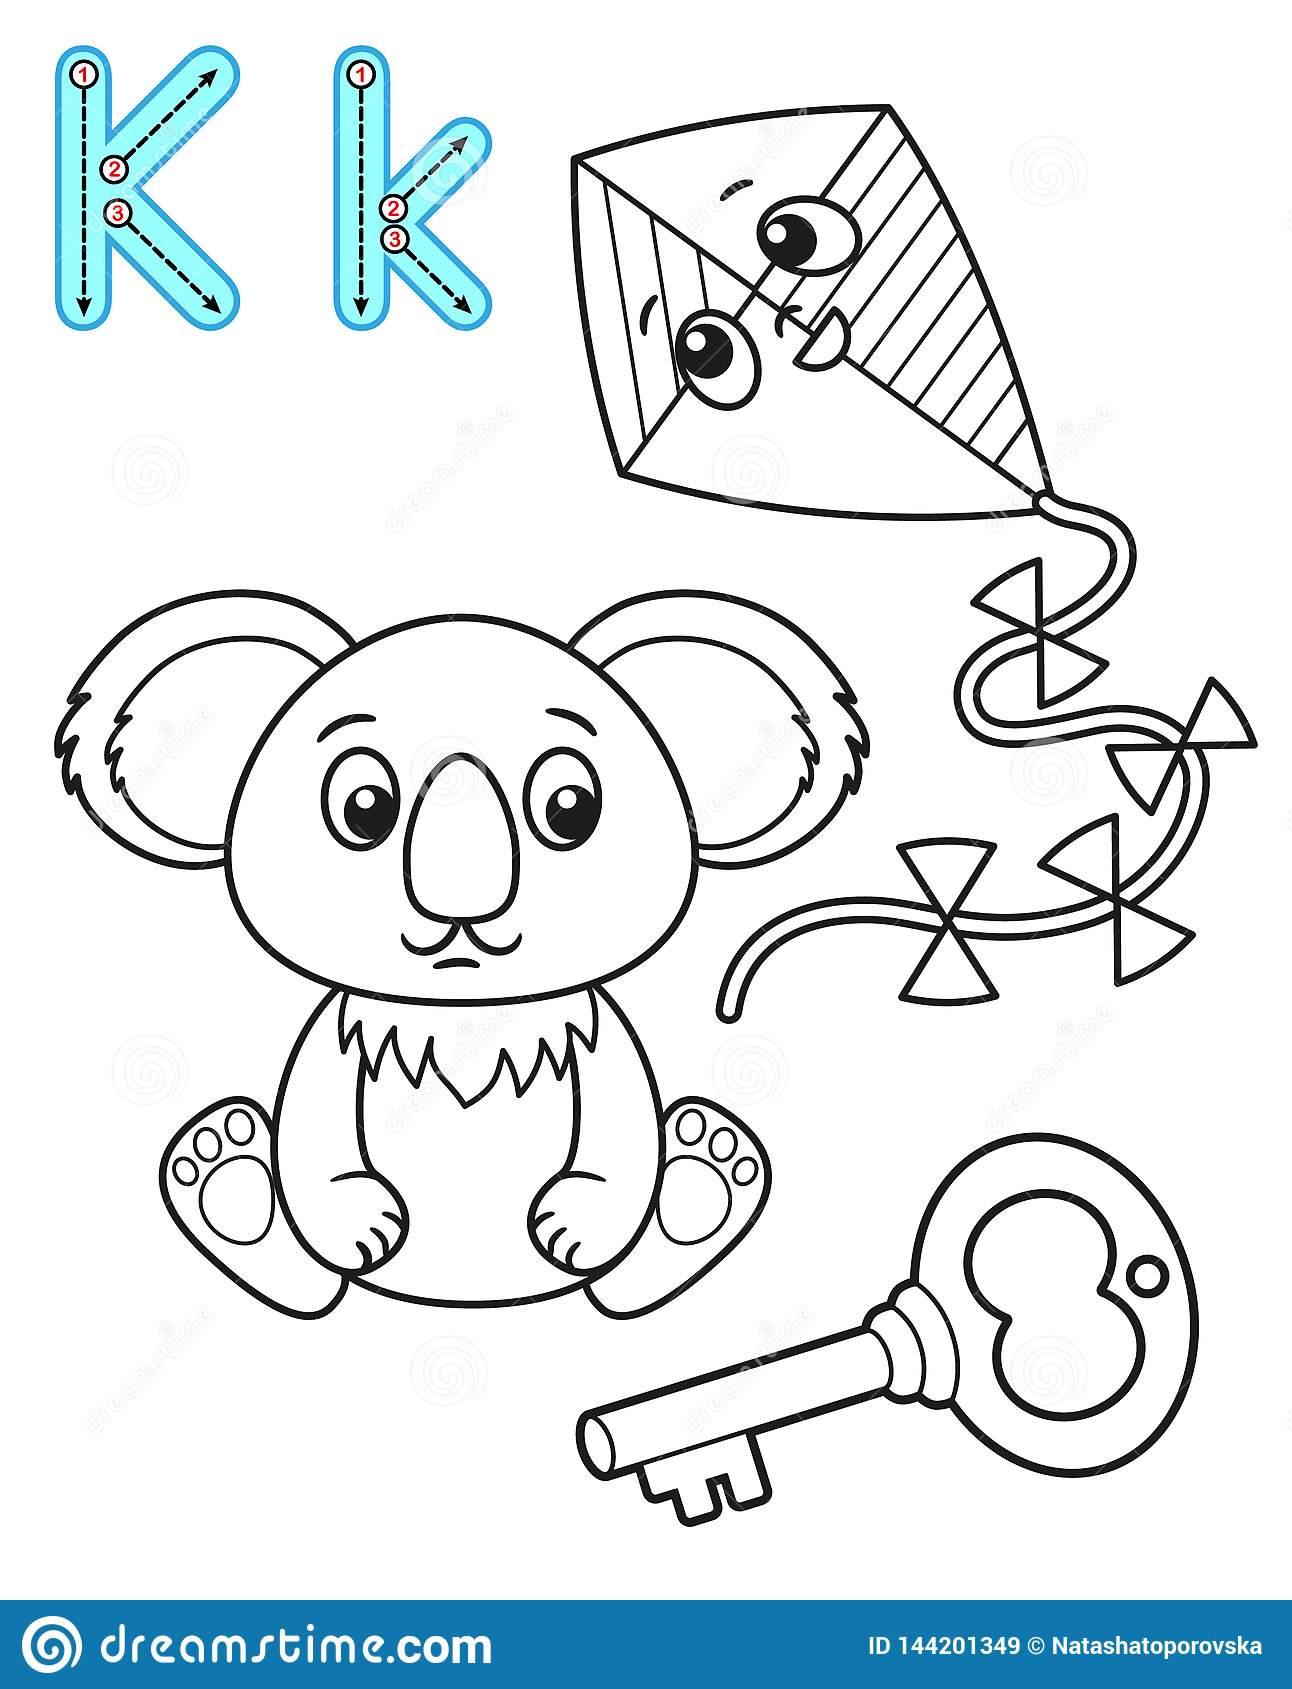 coloring pages : Kids Activity Book Printable Art Coloring Book ... | 1689x1292